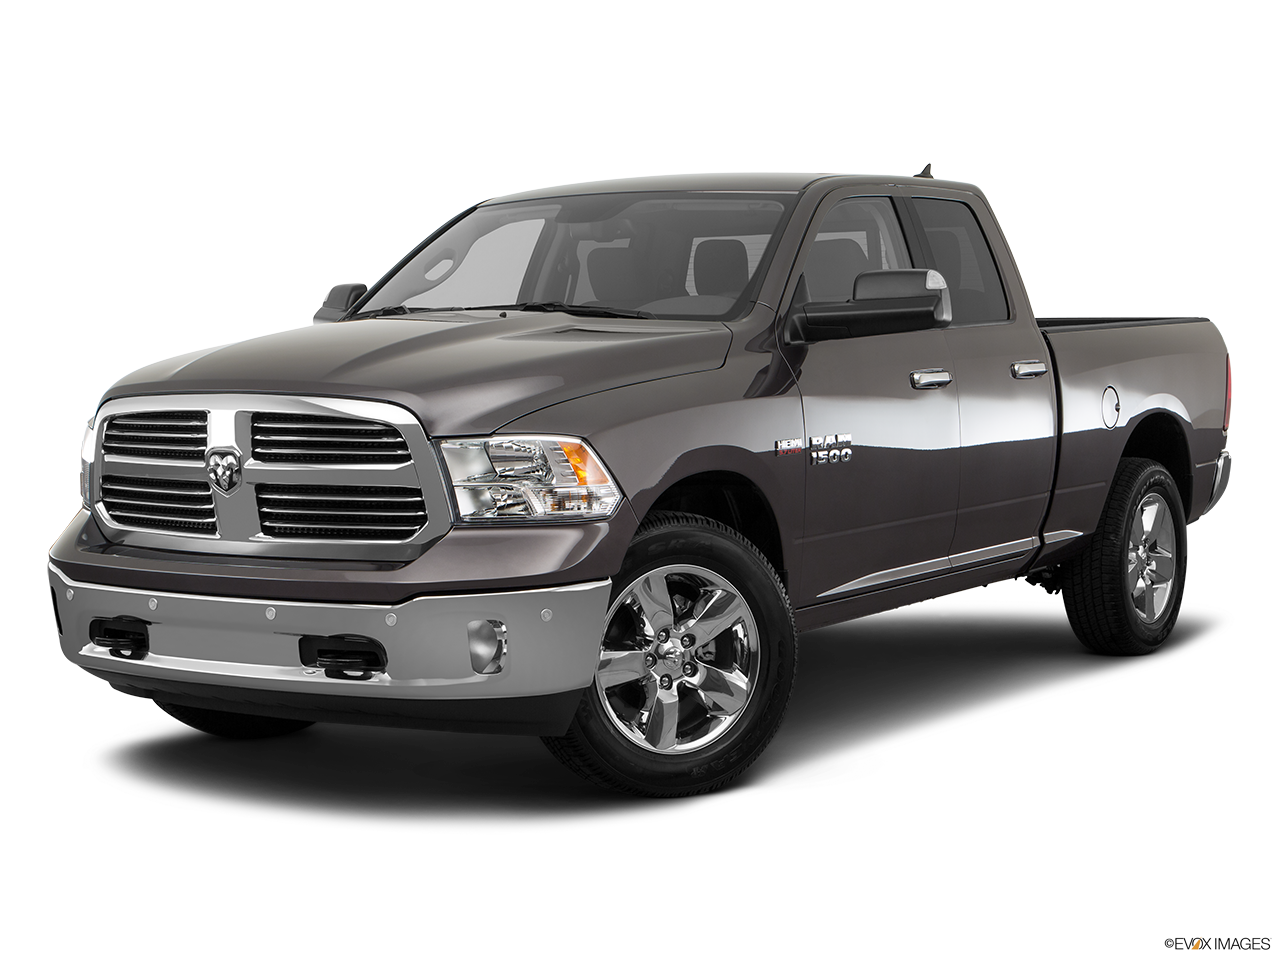 Test Drive A 2017 RAM 1500 at Premier RAM in Tracy